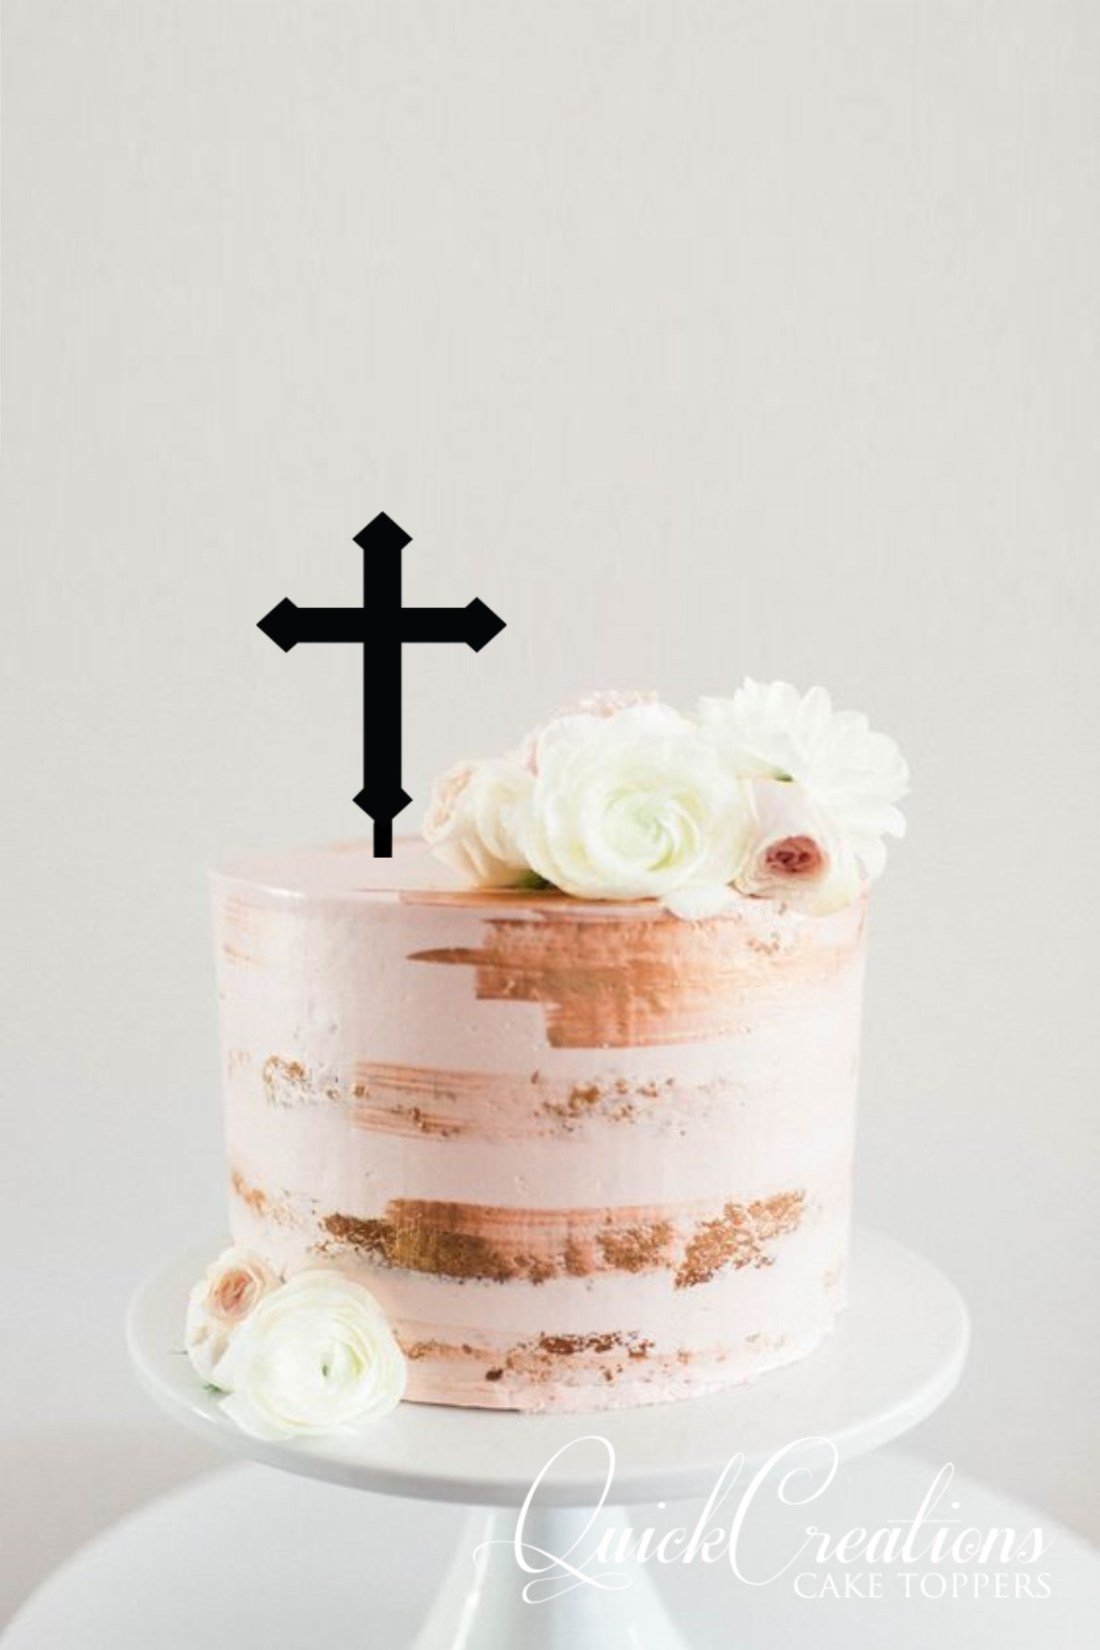 Quick Creations Cake Topper - Cross